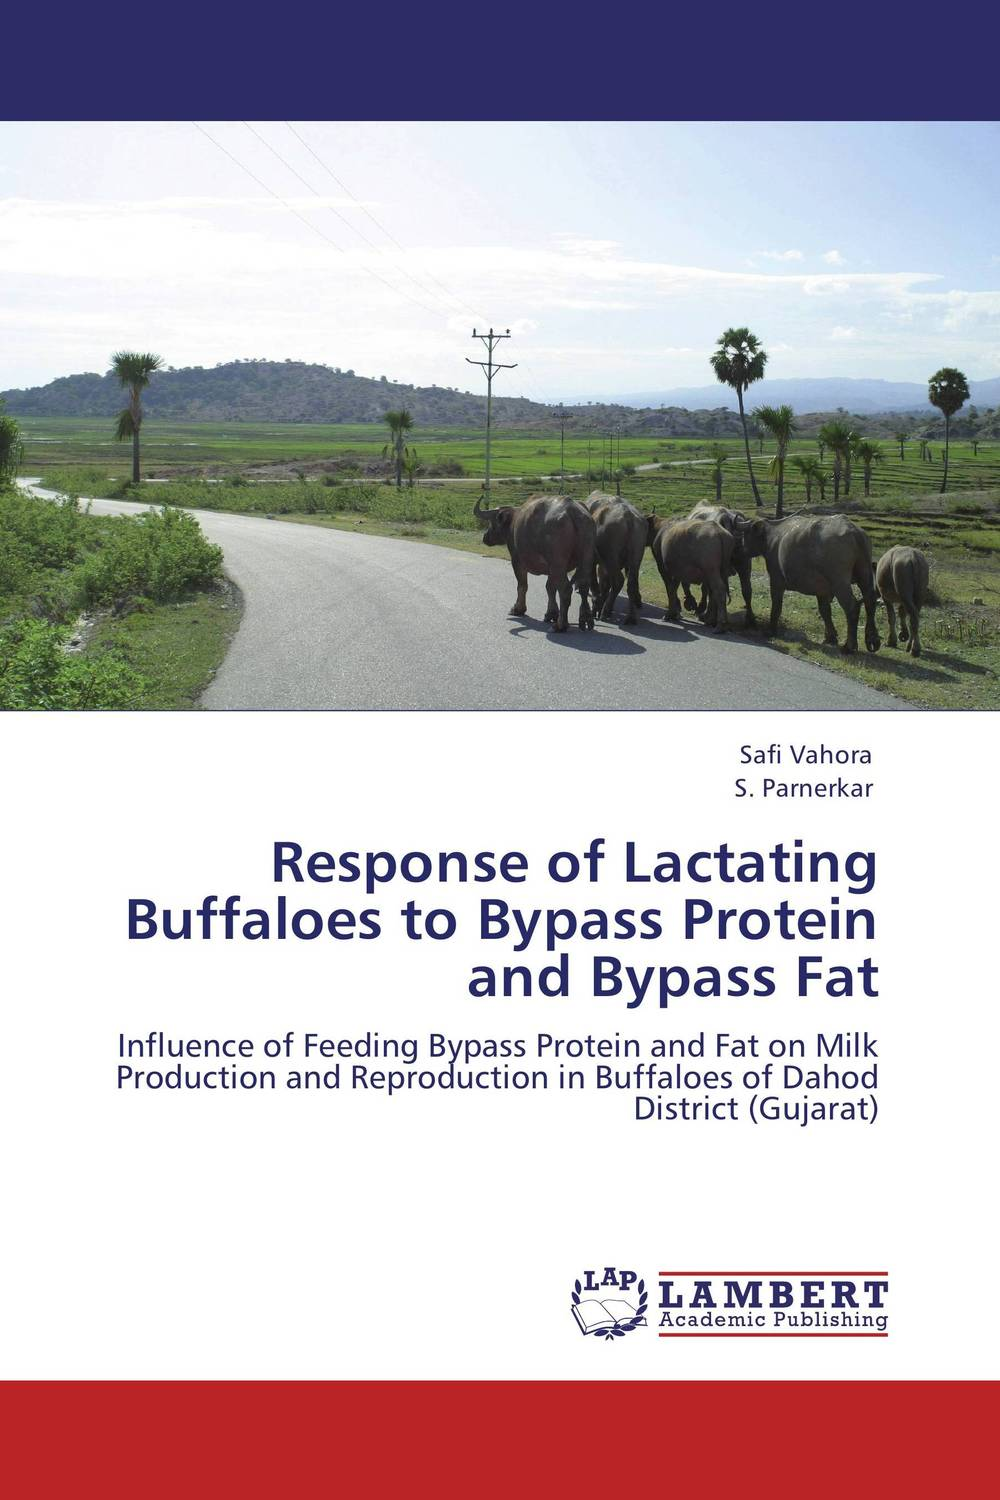 Response of Lactating Buffaloes to Bypass Protein and Bypass Fat therapeutic efficiency of norgestomet and pmsg in anestrous buffaloes